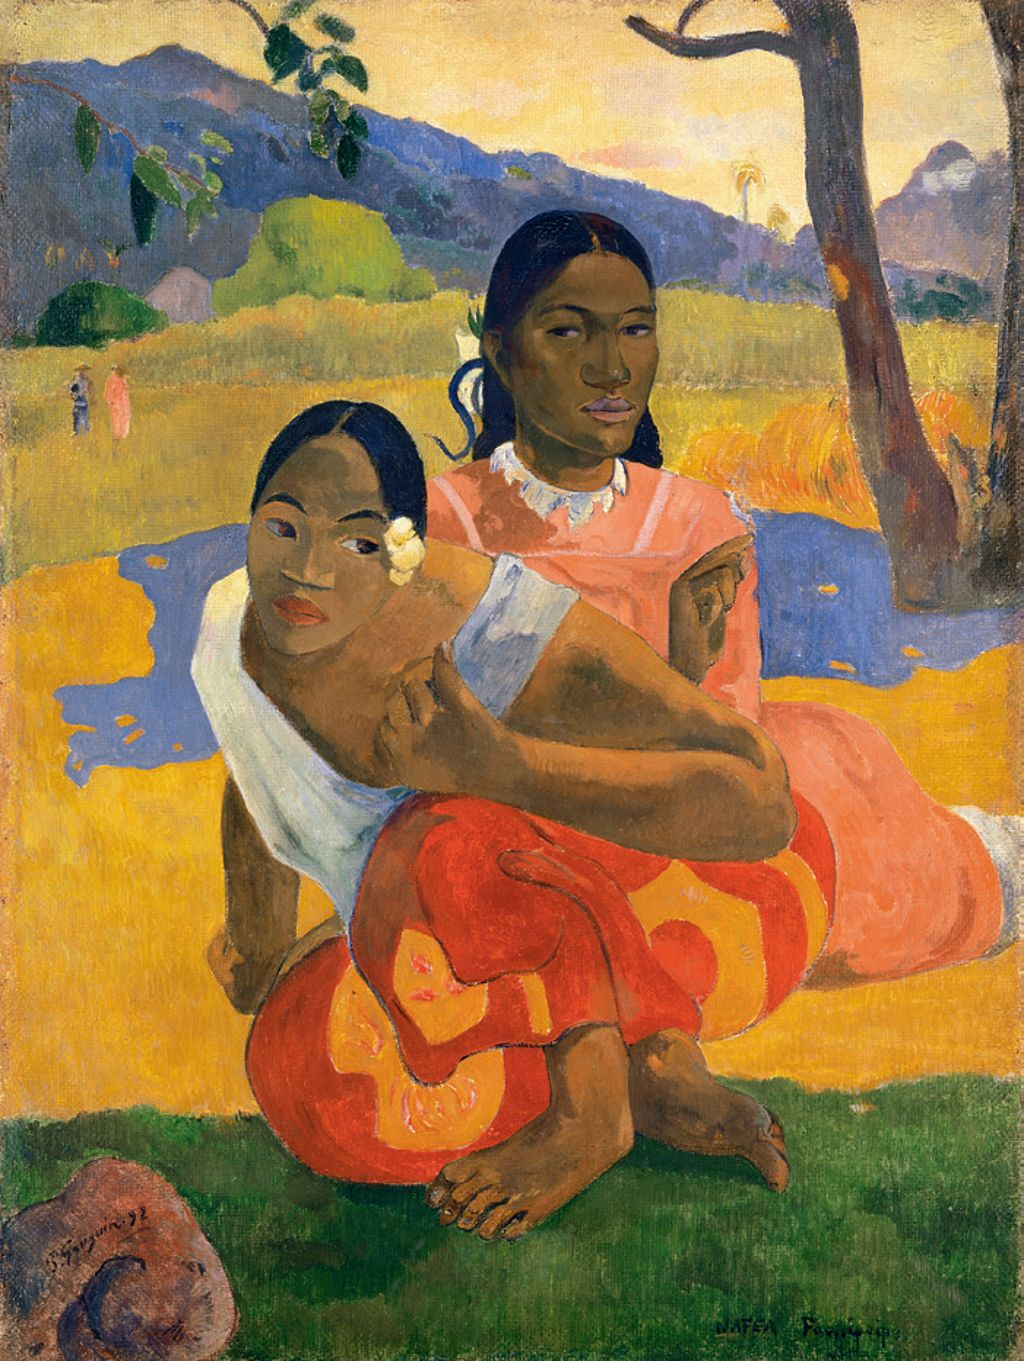 Paul Gauguin, Nafea Faa Ipoipo? (When Will You Marry?) 1892, oil on canvas, 101 x 77 cm